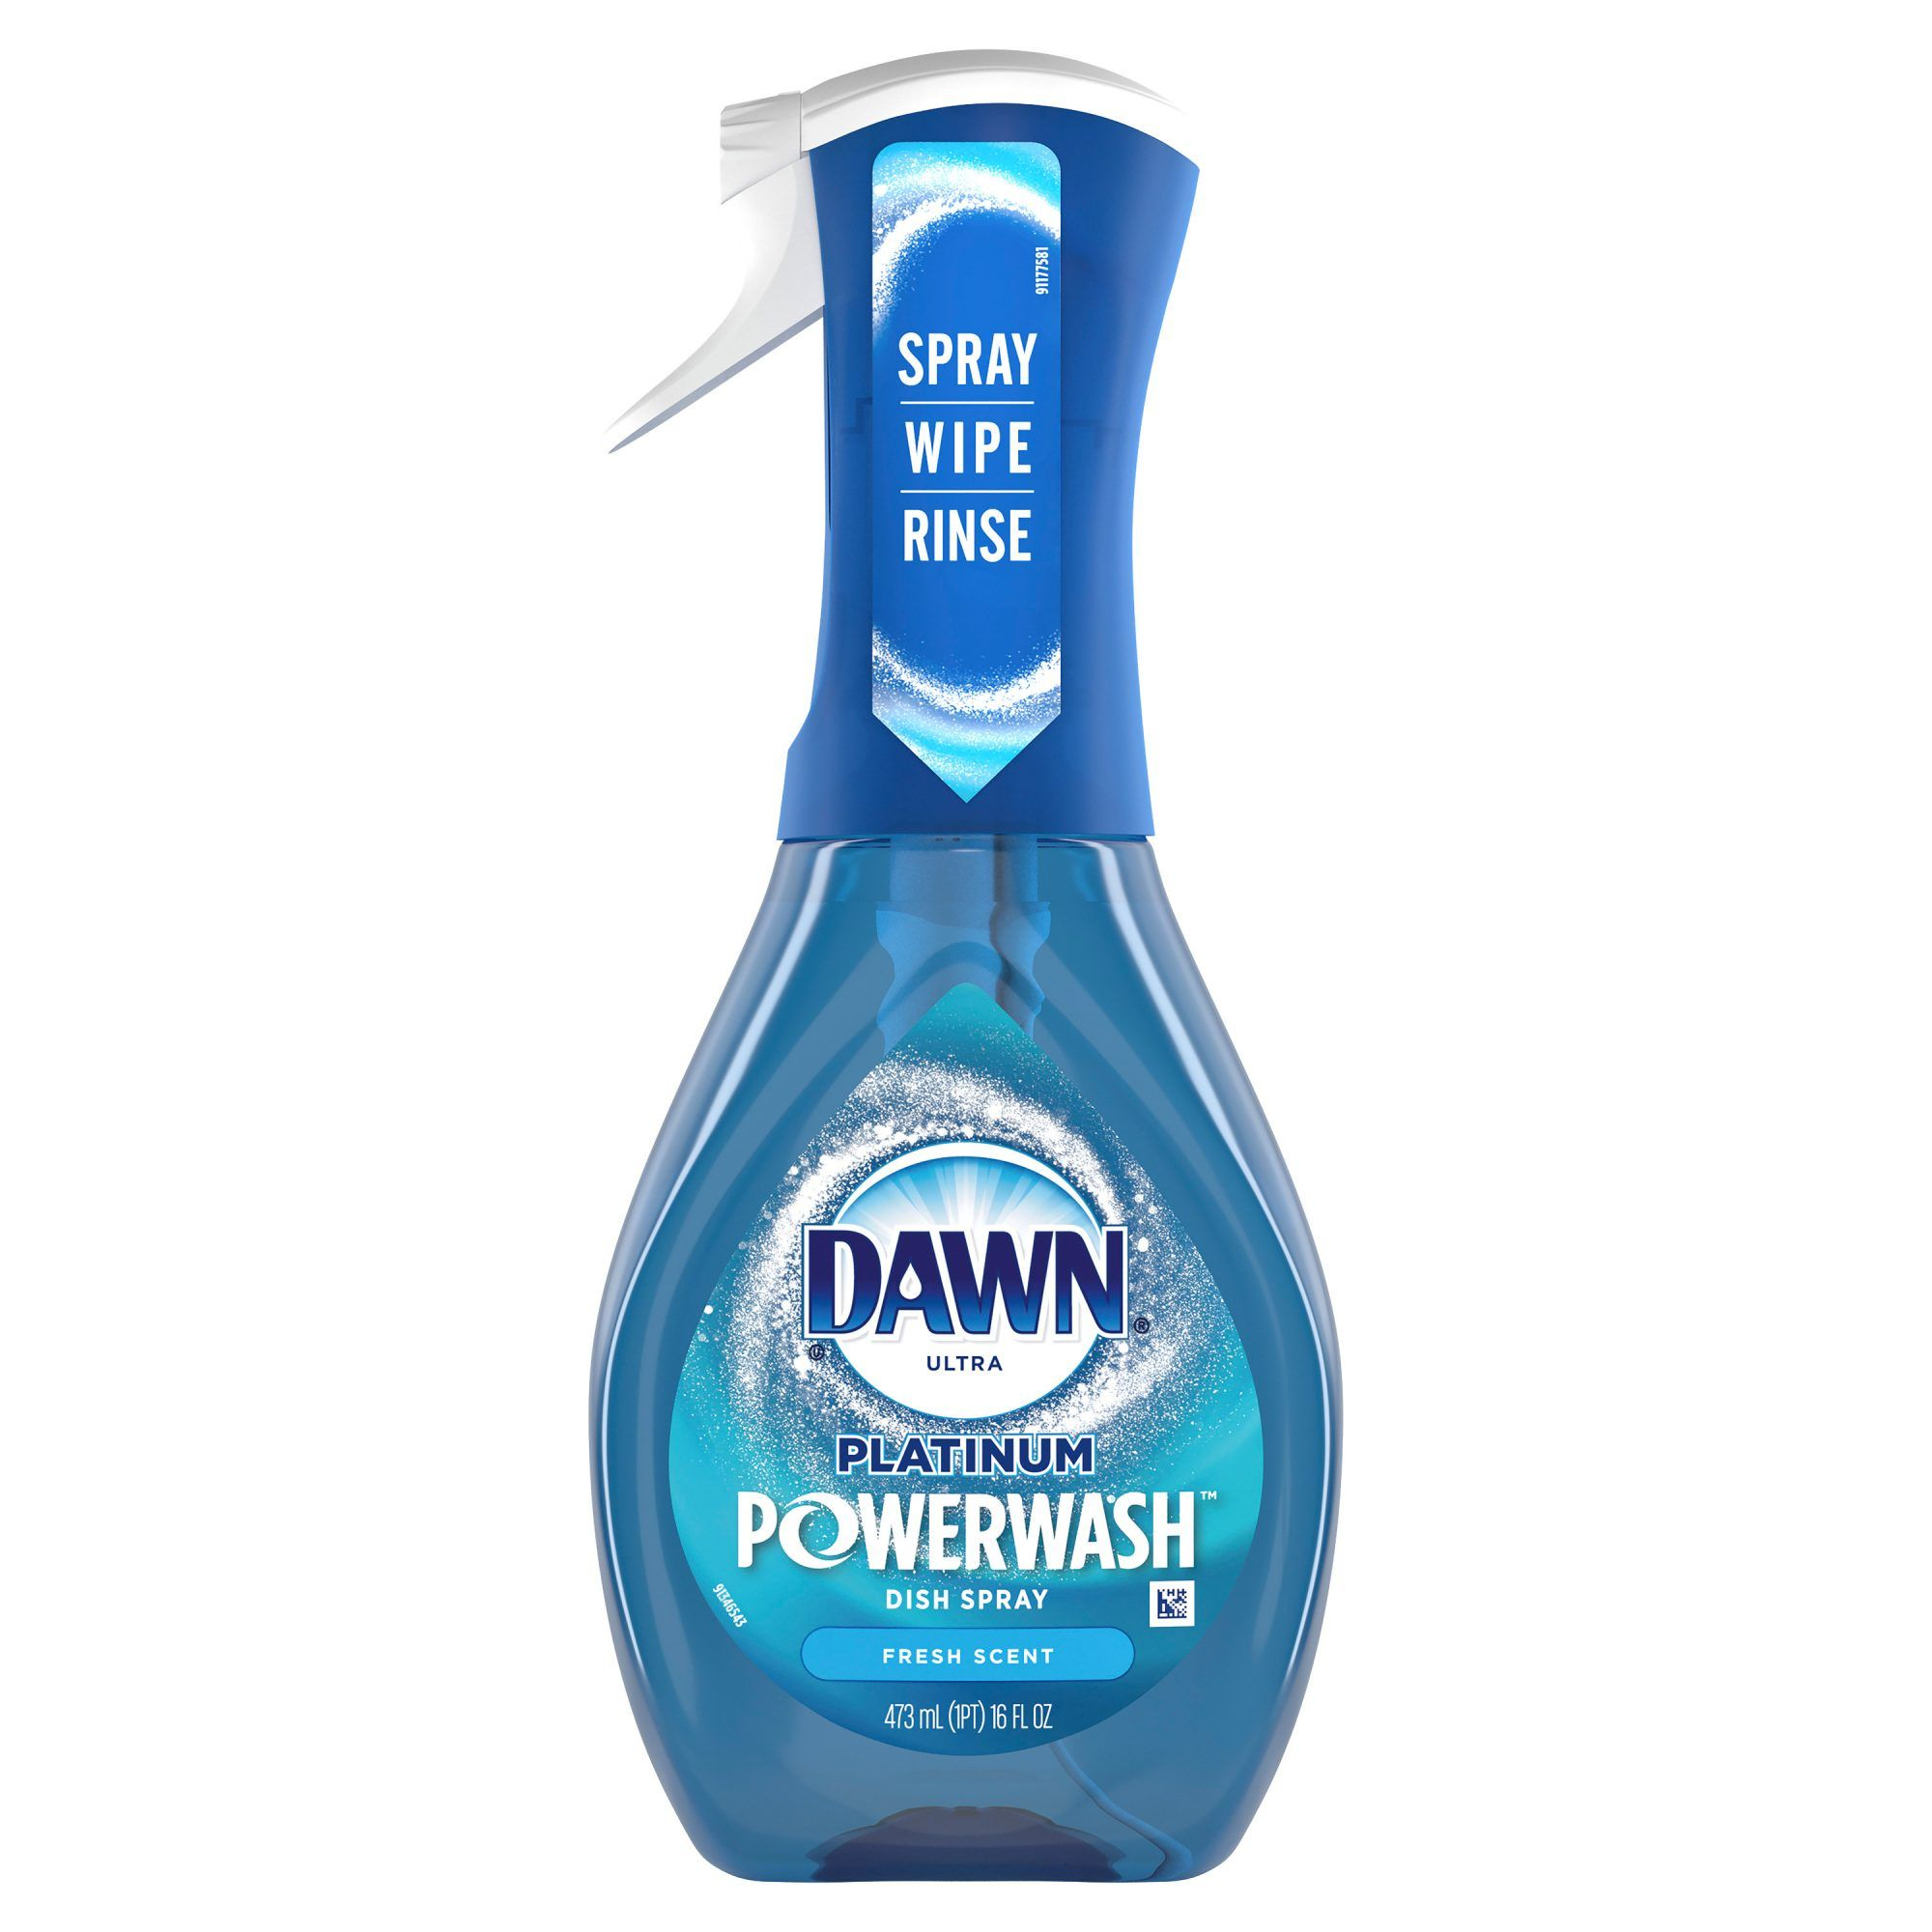 Can You Wash Your Dog With Dawn Dish Detergent I Swear This Dish Soap Makes It Easier To Do The Dishes Here S Why In 2020 Spray Fresh Scent Dishwashing Liquid